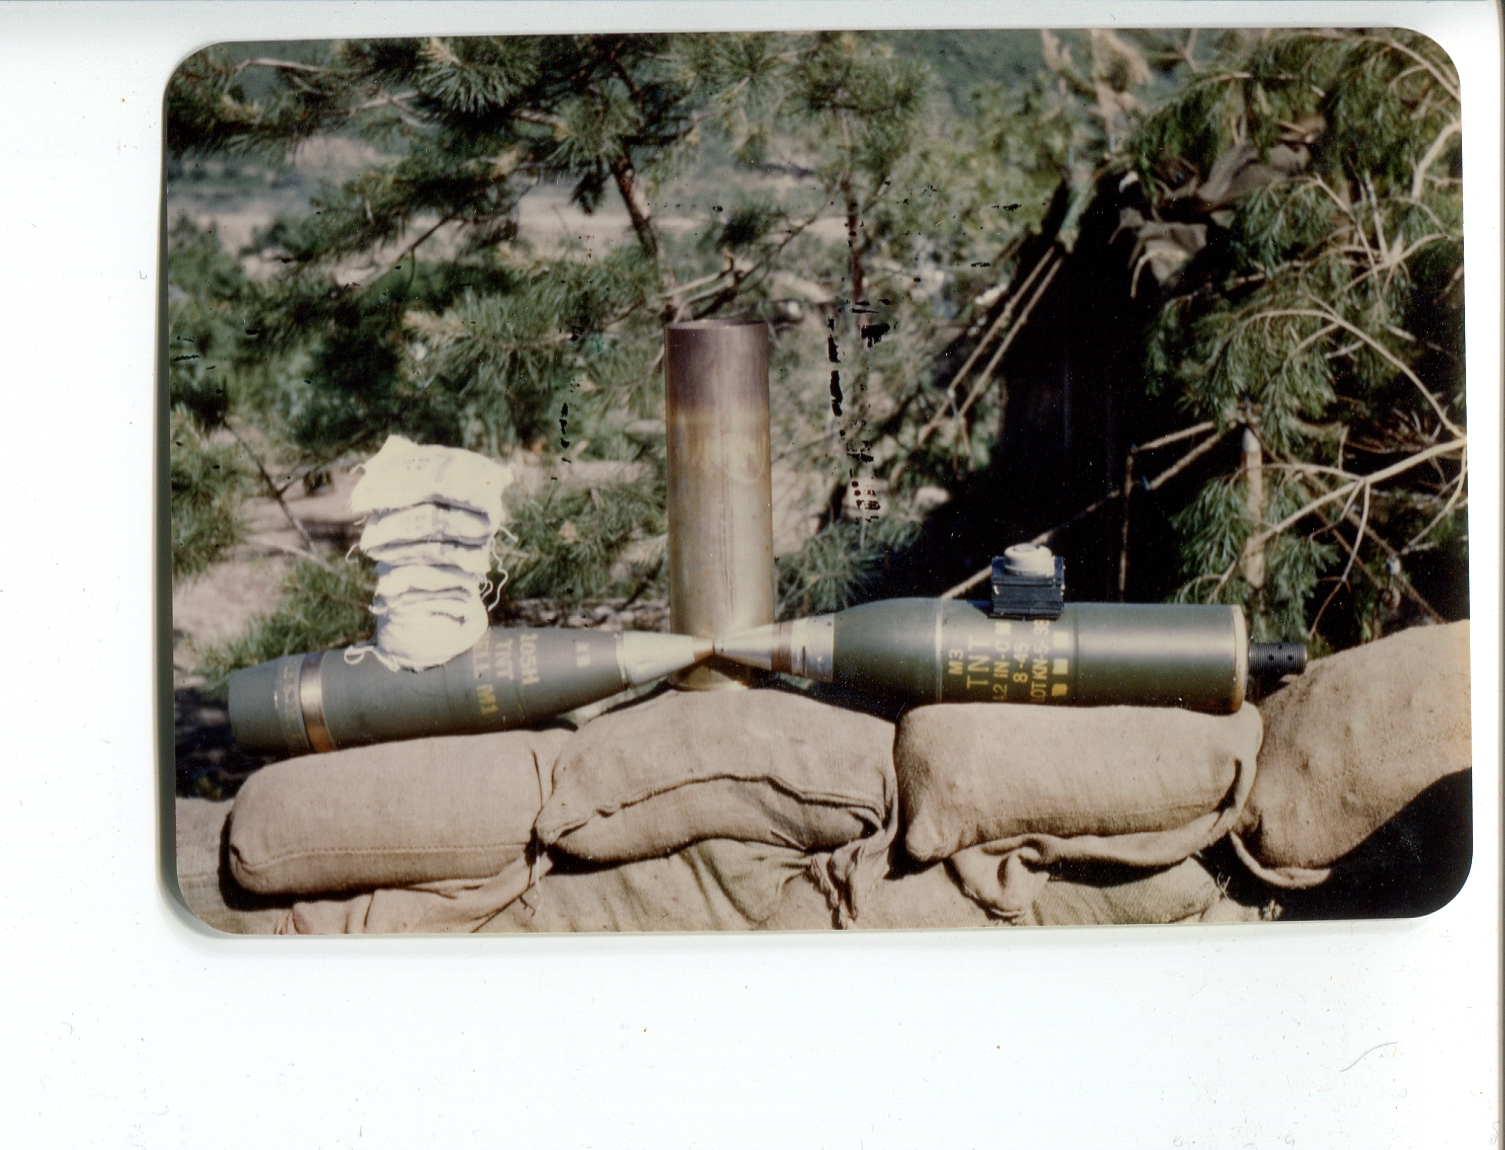 kron167 mortar and howitzer rds